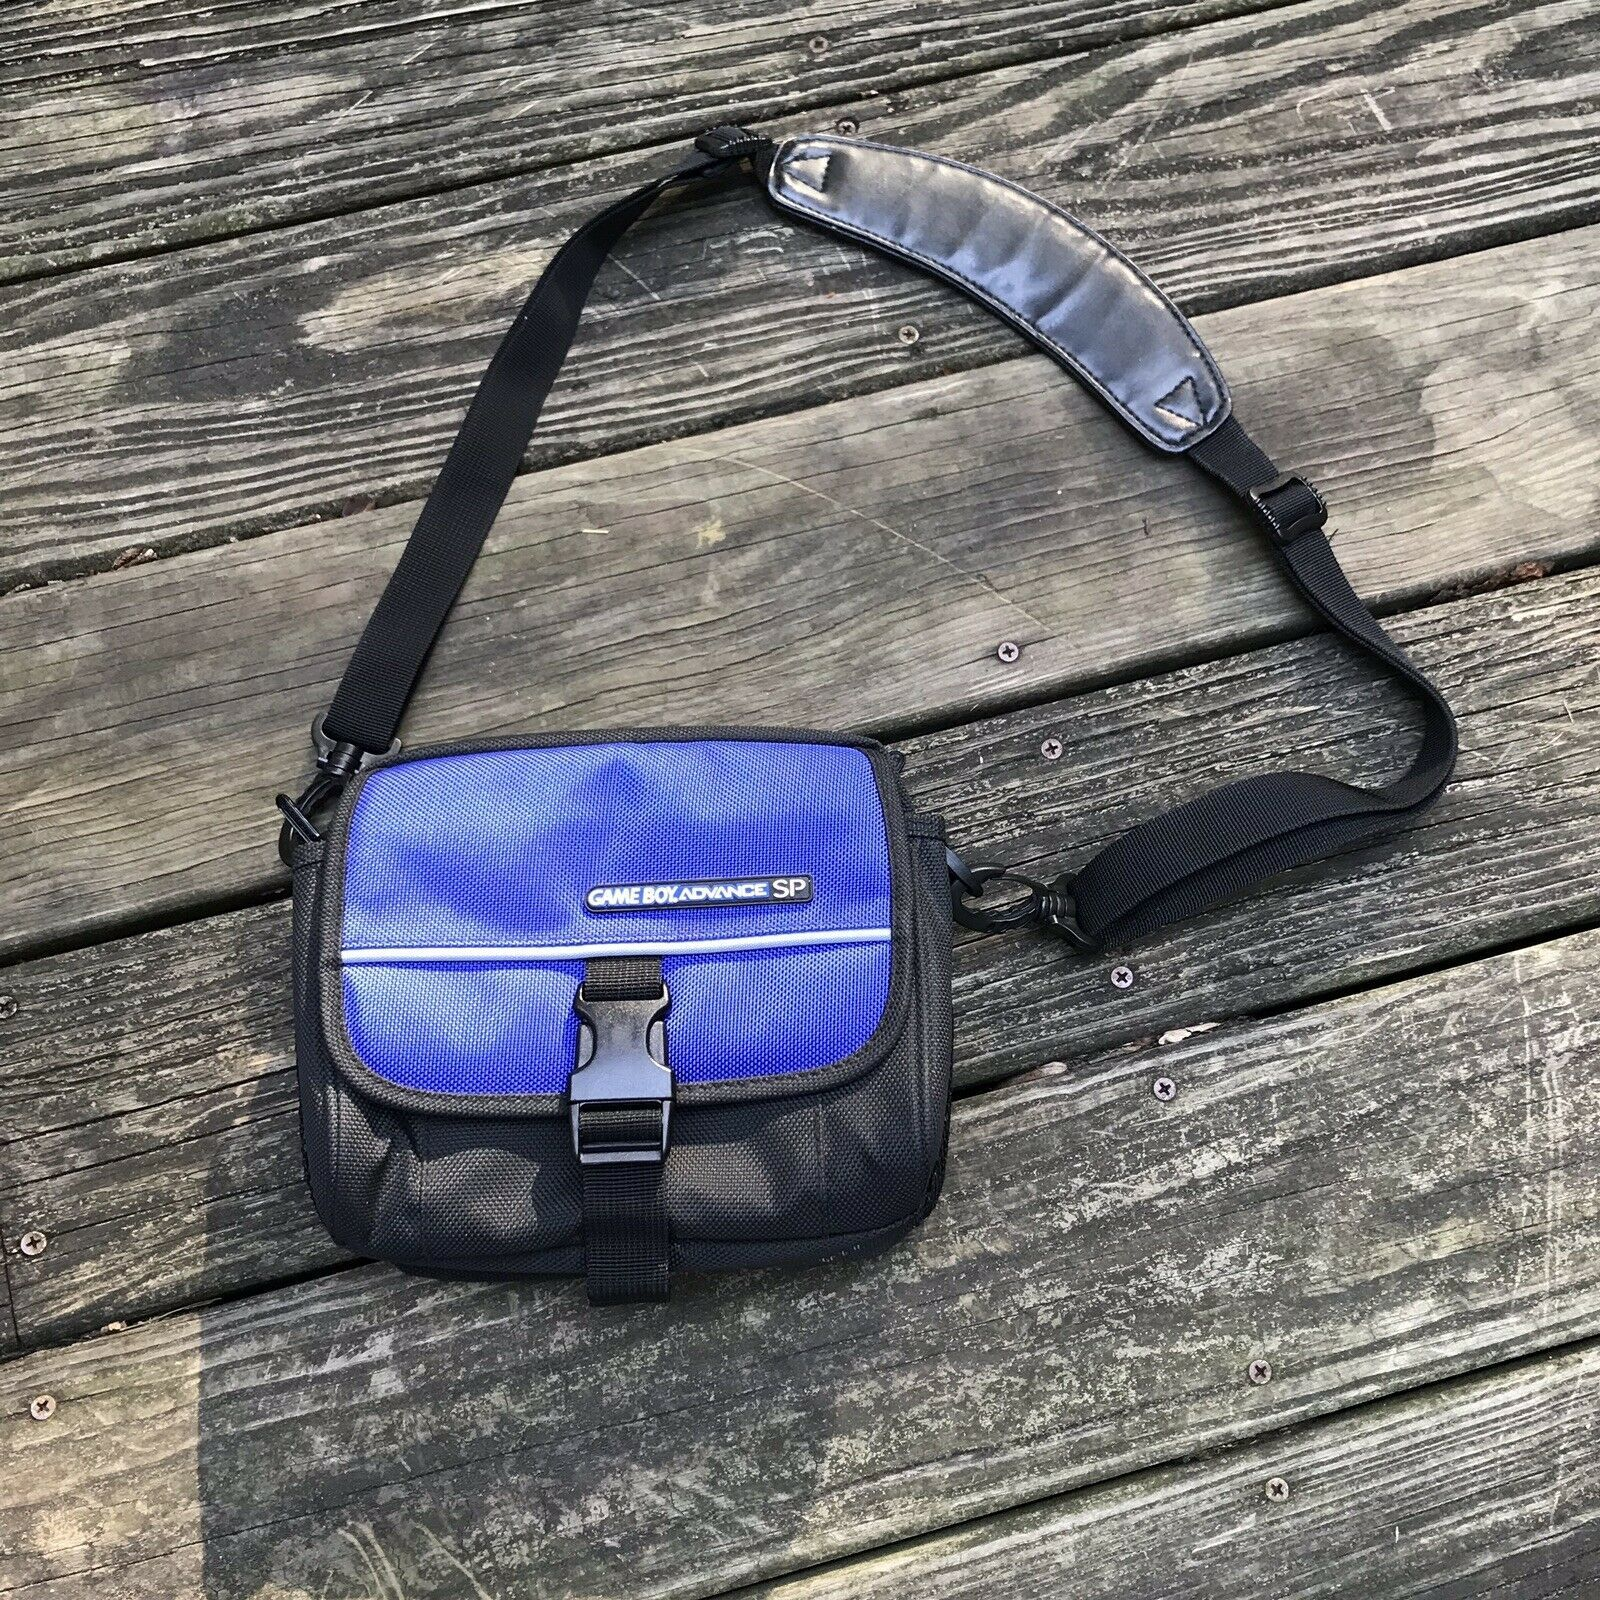 Primary image for Vintage Nintendo Gameboy Carrying Case Bag Black Shoulder Bag Supreme Waist Bag